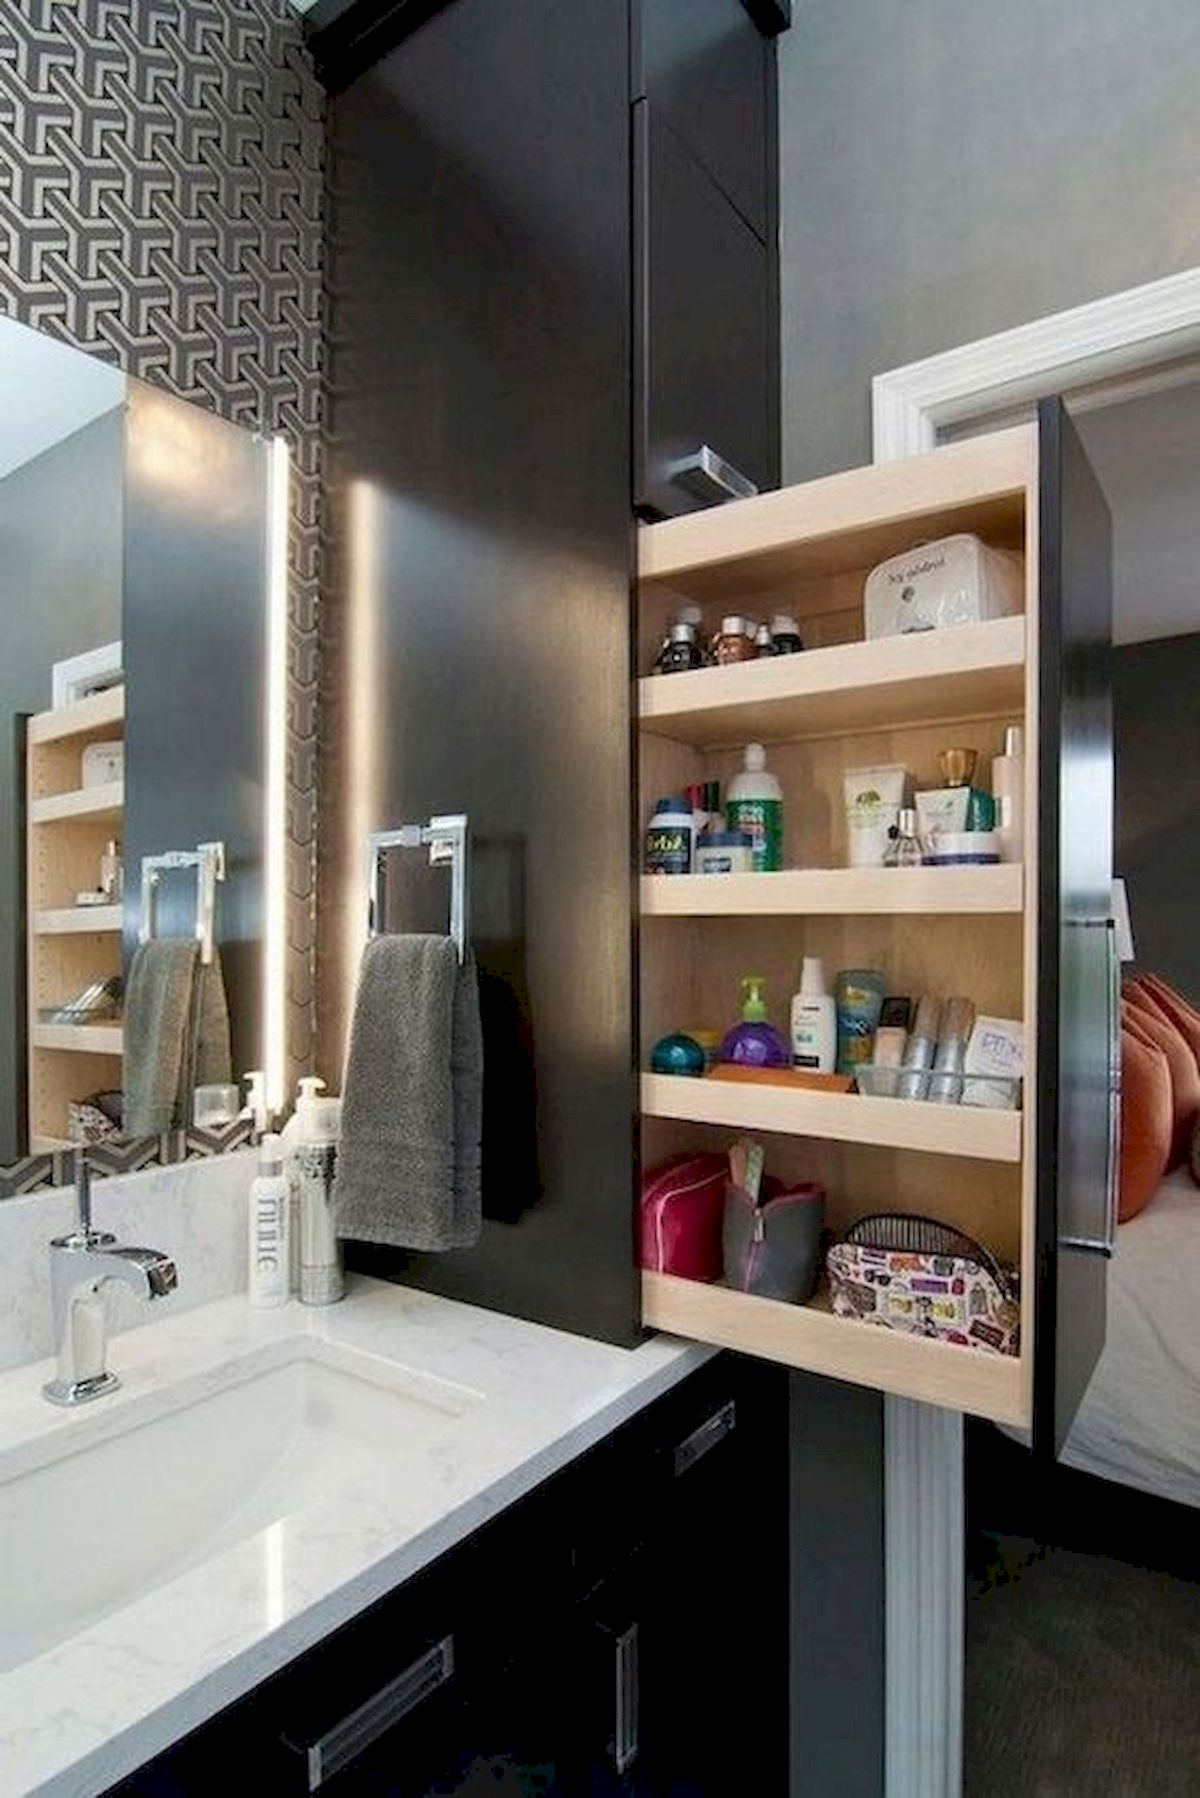 50 Best DIY Storage Design Ideas to Maximize Your Small Bathroom Space (47)